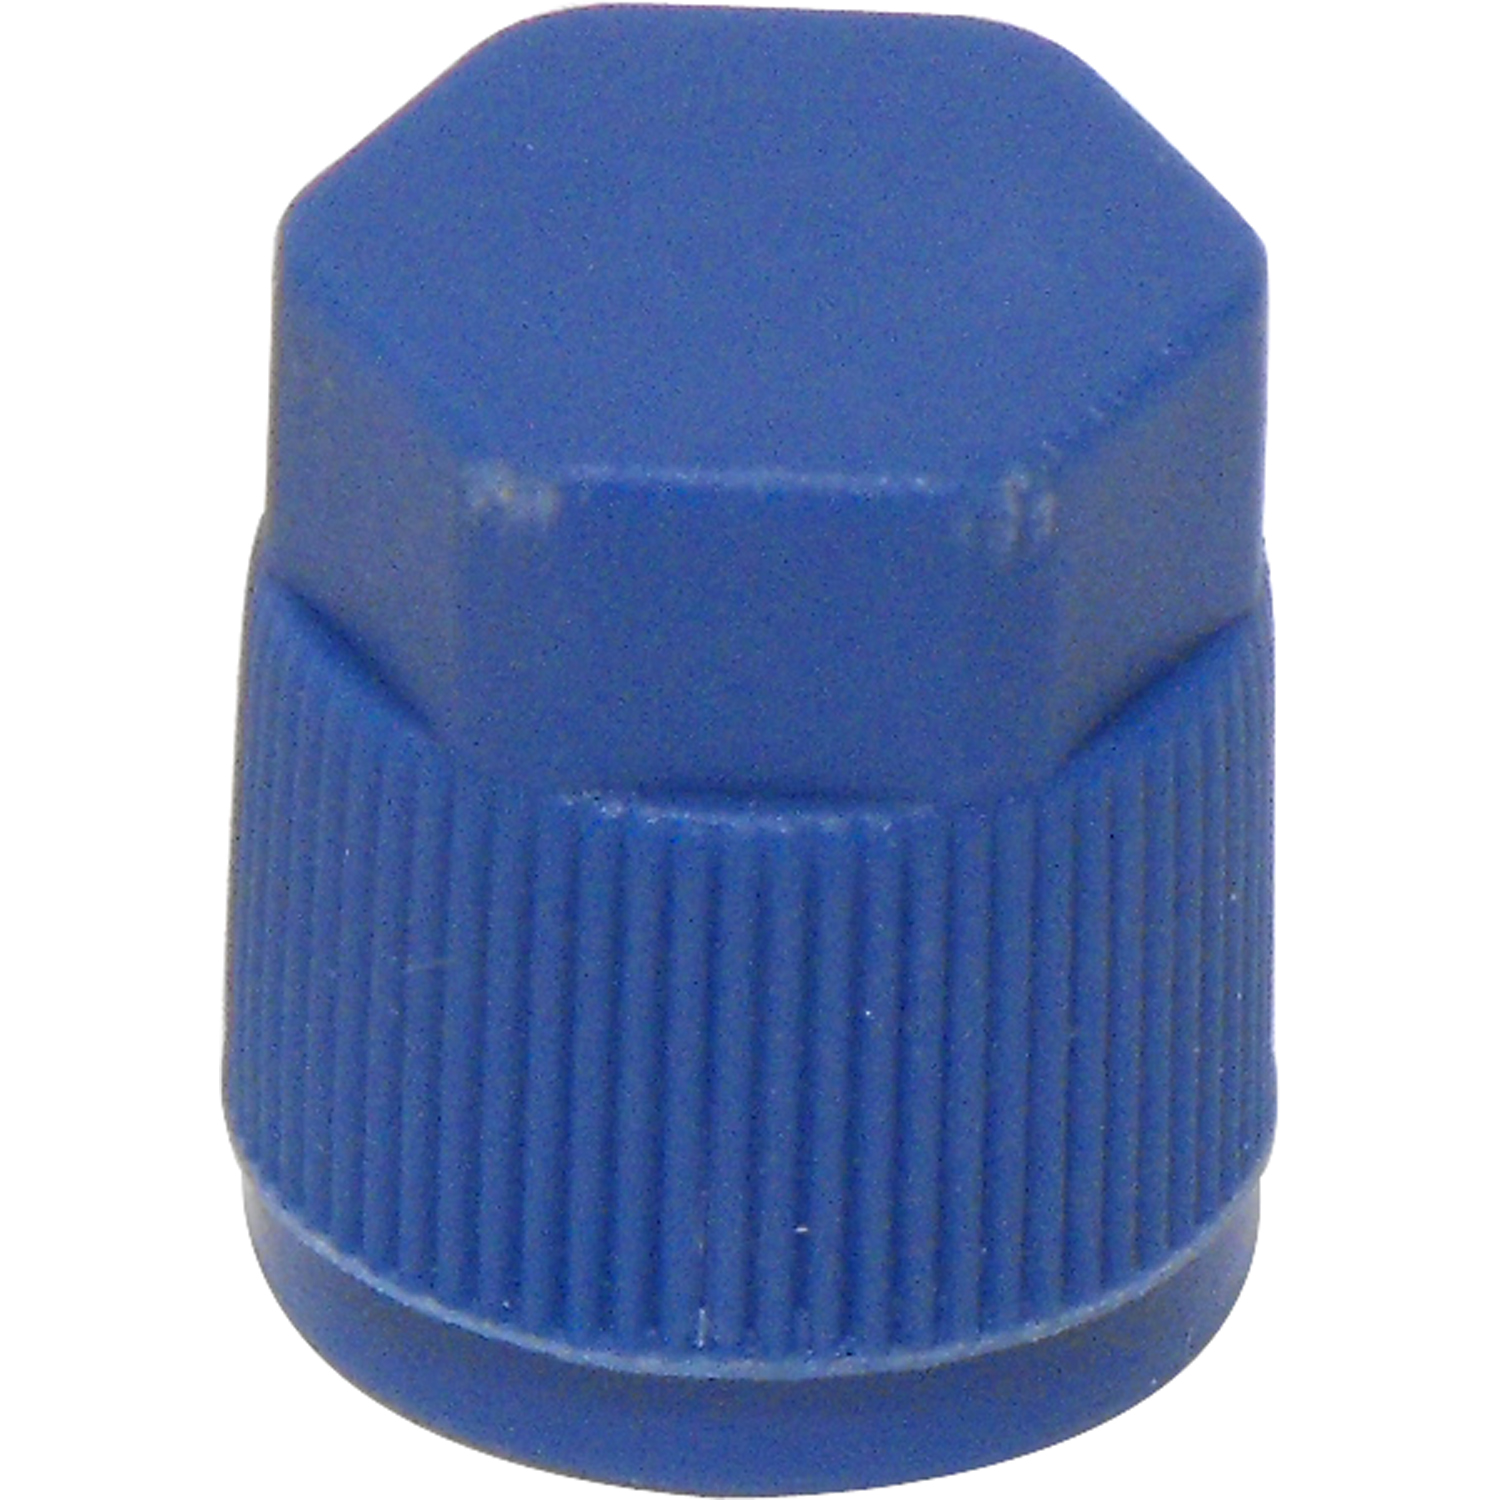 Blue Low Side JRA Port Cap  Replacement Cap for OEM Applications